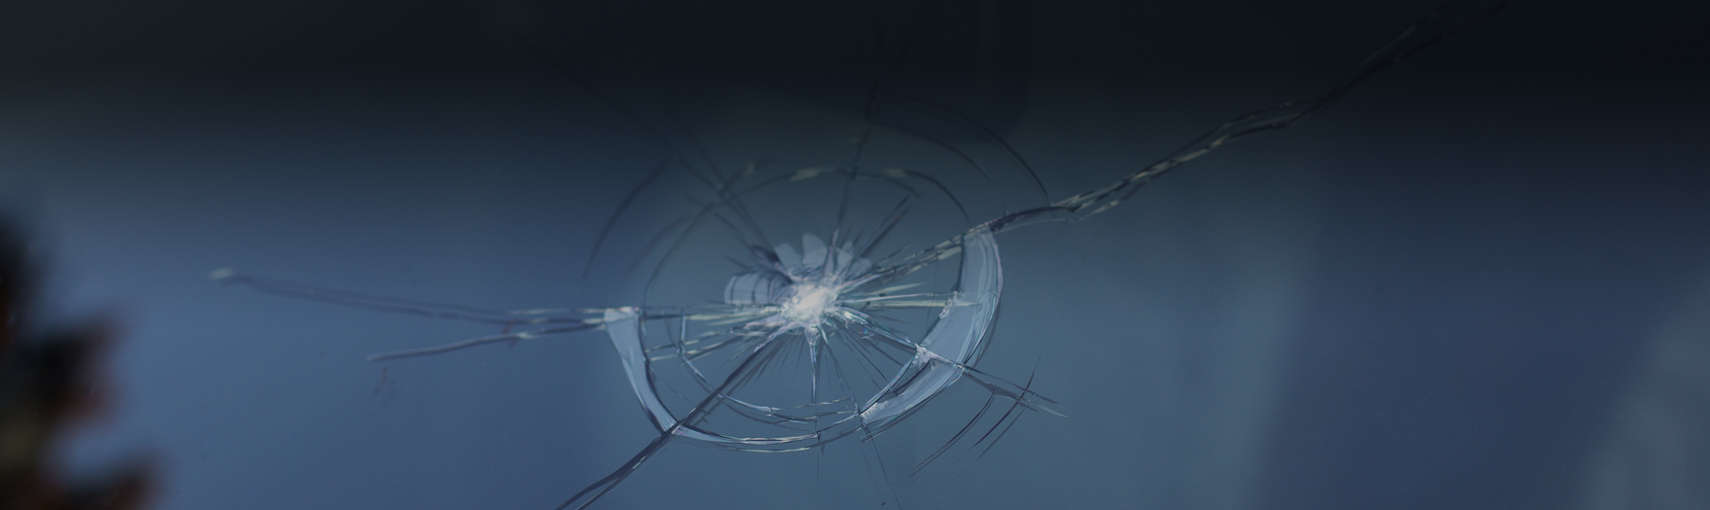 Mobile Auto Glass Repair Hagersville, Mobile Windshield Repair Hagersville